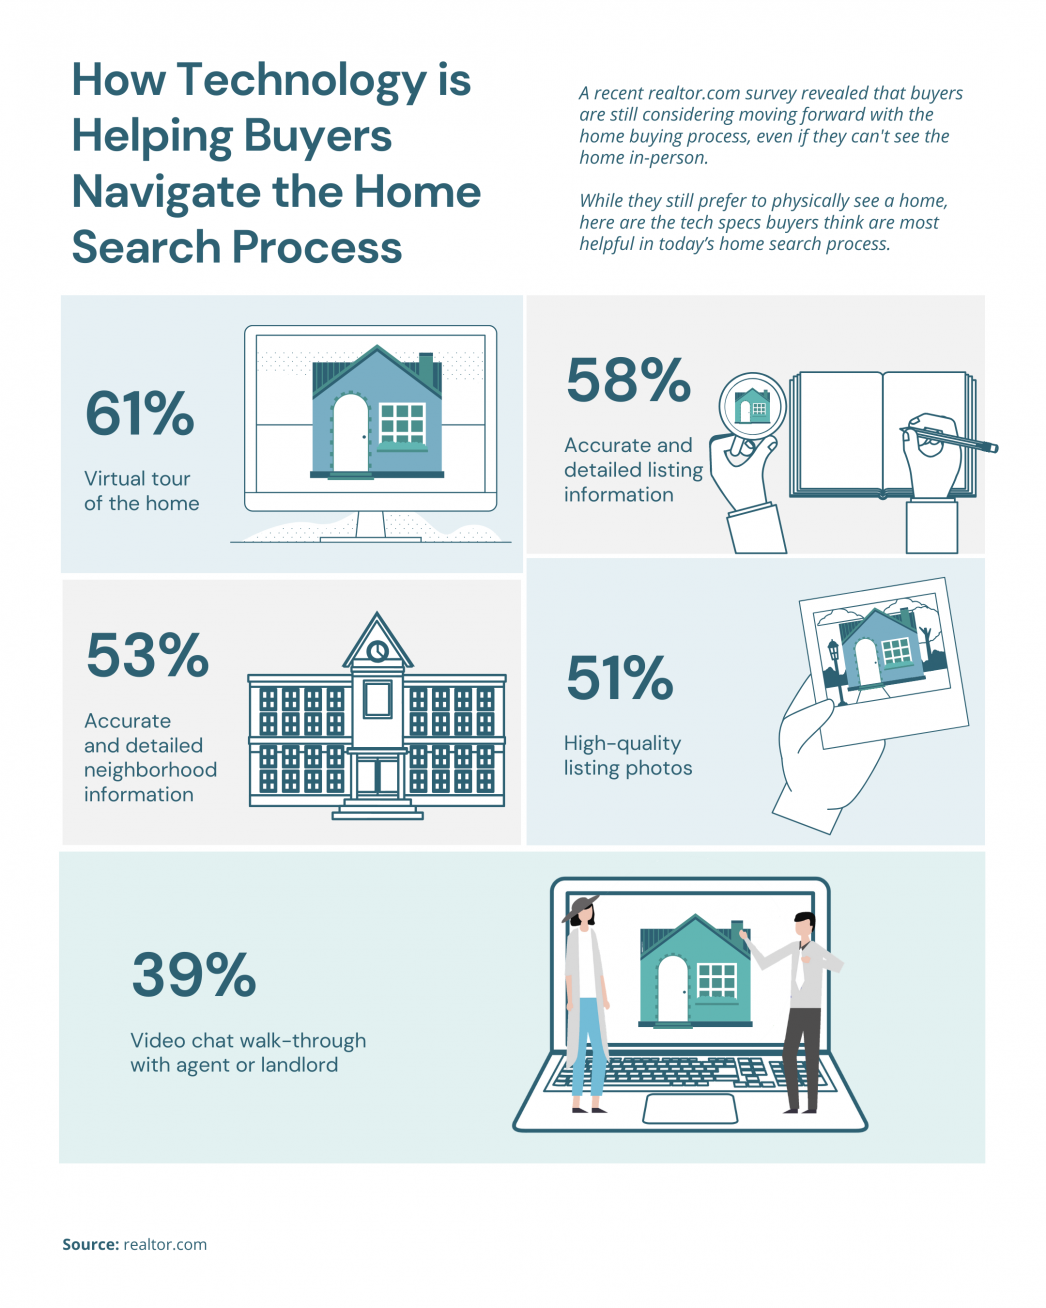 How Technology is Helping Buyers Navigate the Home Search Process